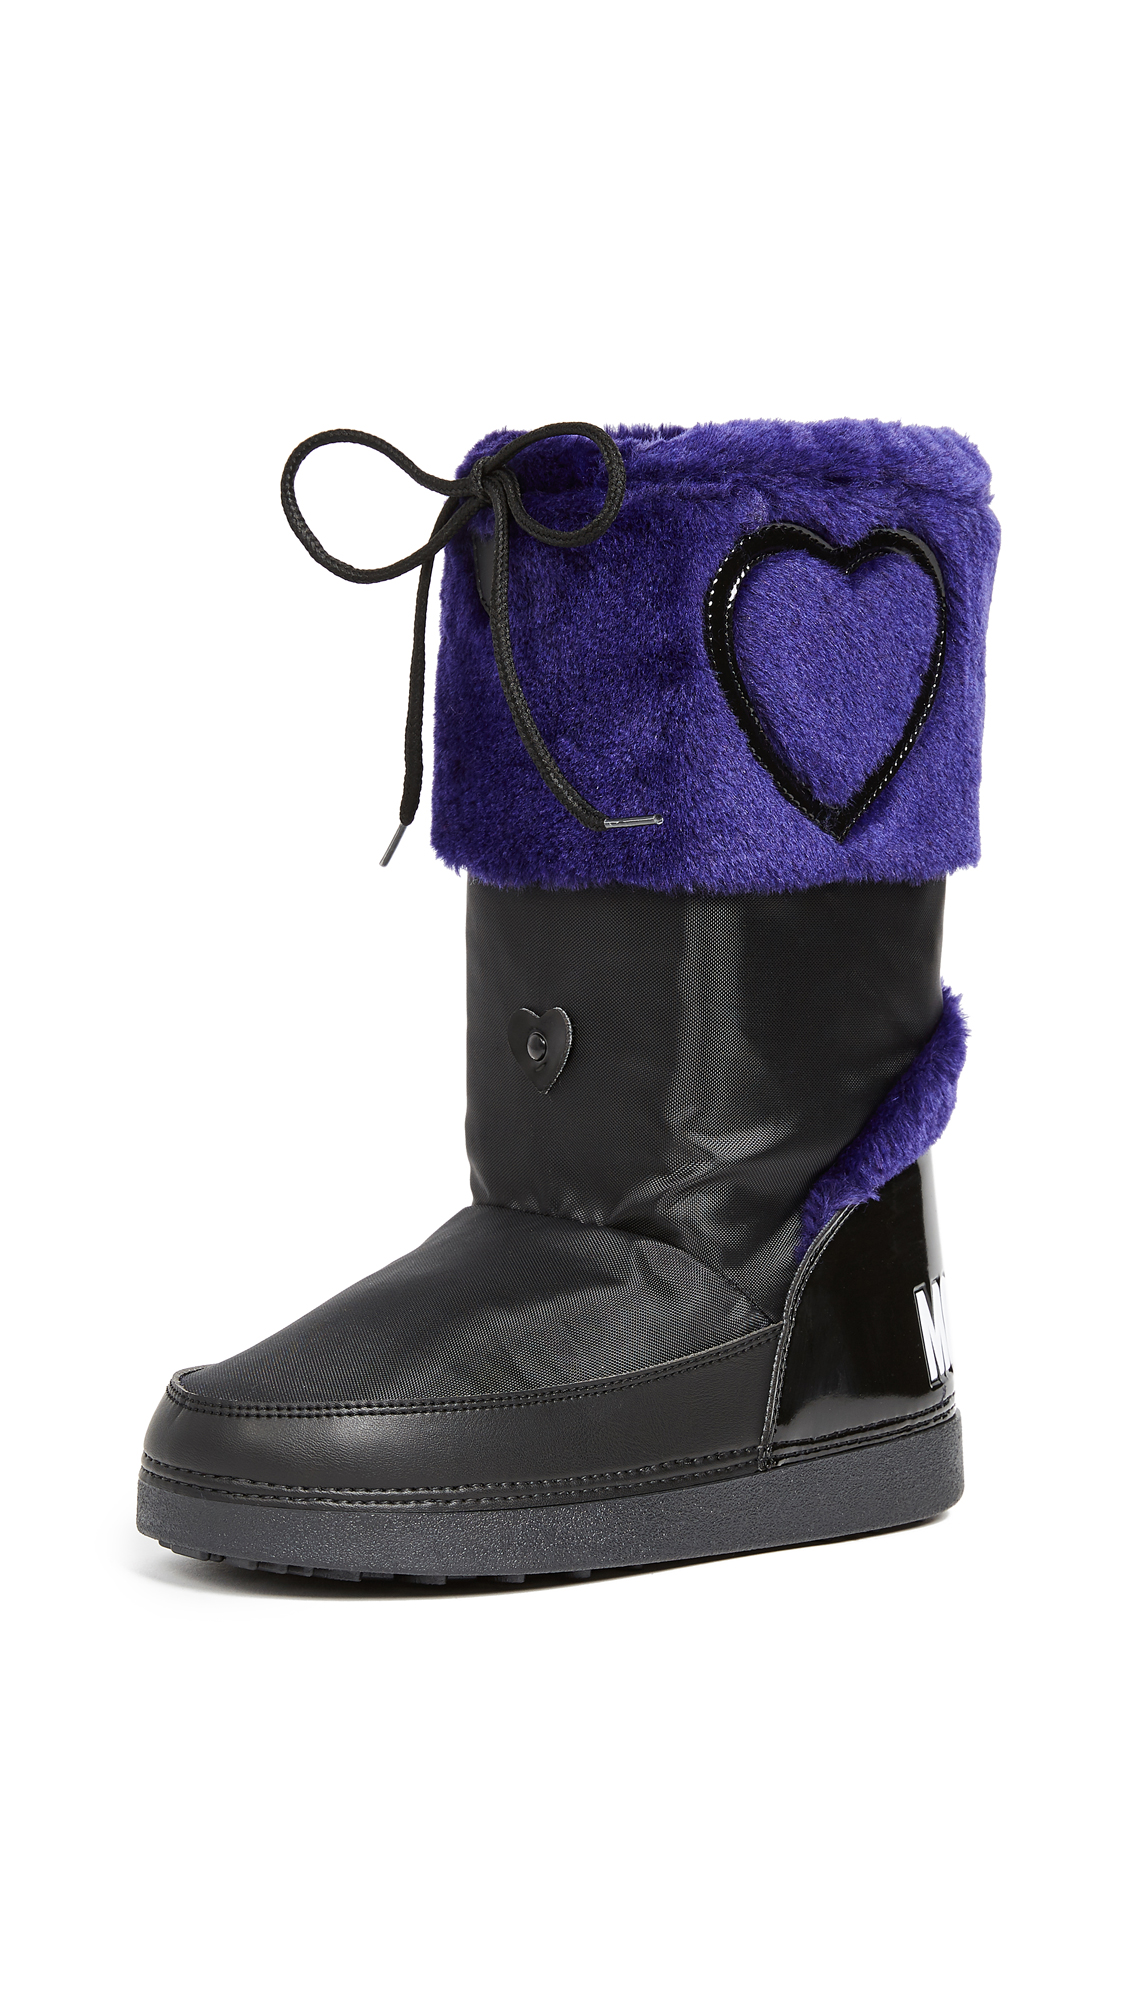 Moschino Love Moschino Ankle Boots - Navy